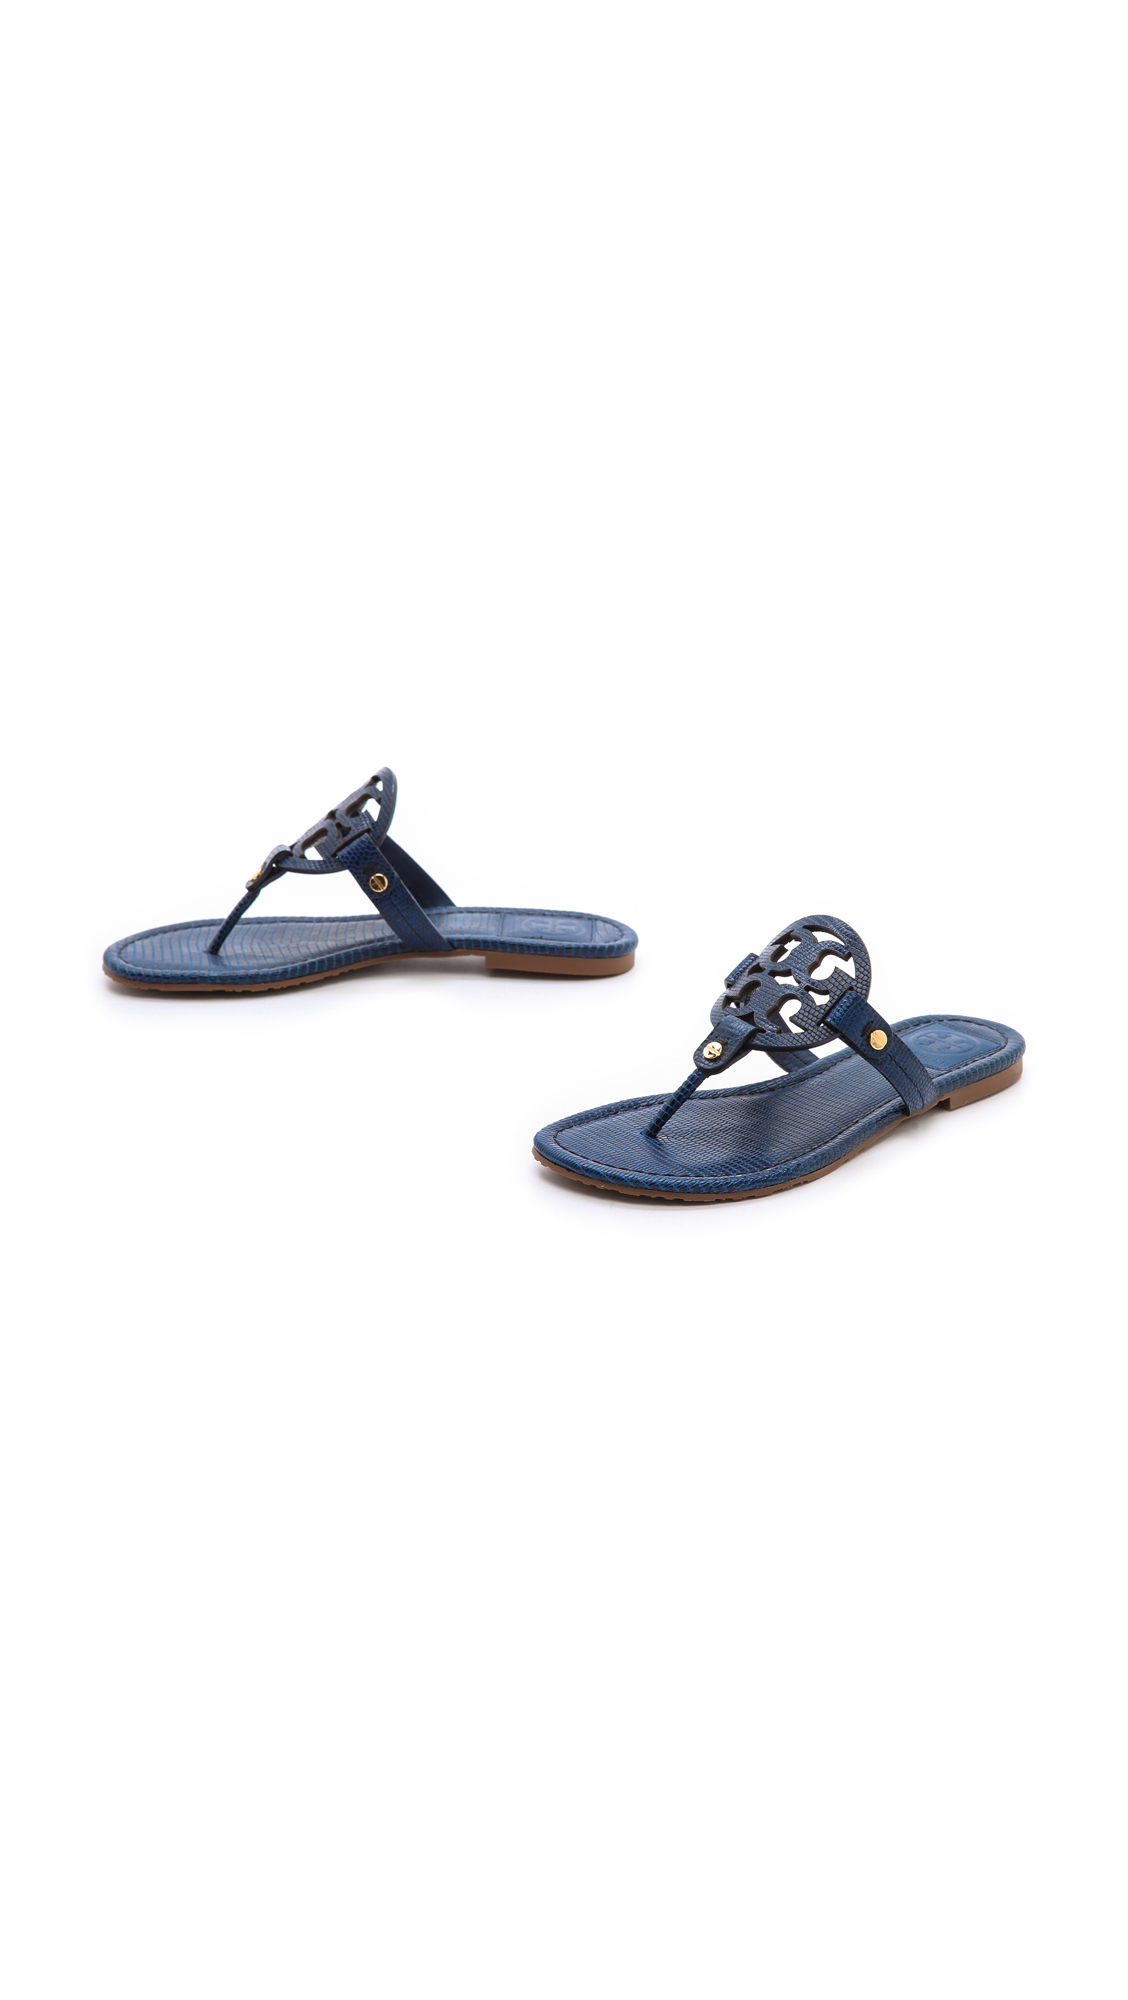 67f53a08f Tory Burch Miller Tejus Print Sandals Newport Navy in Blue - Lyst